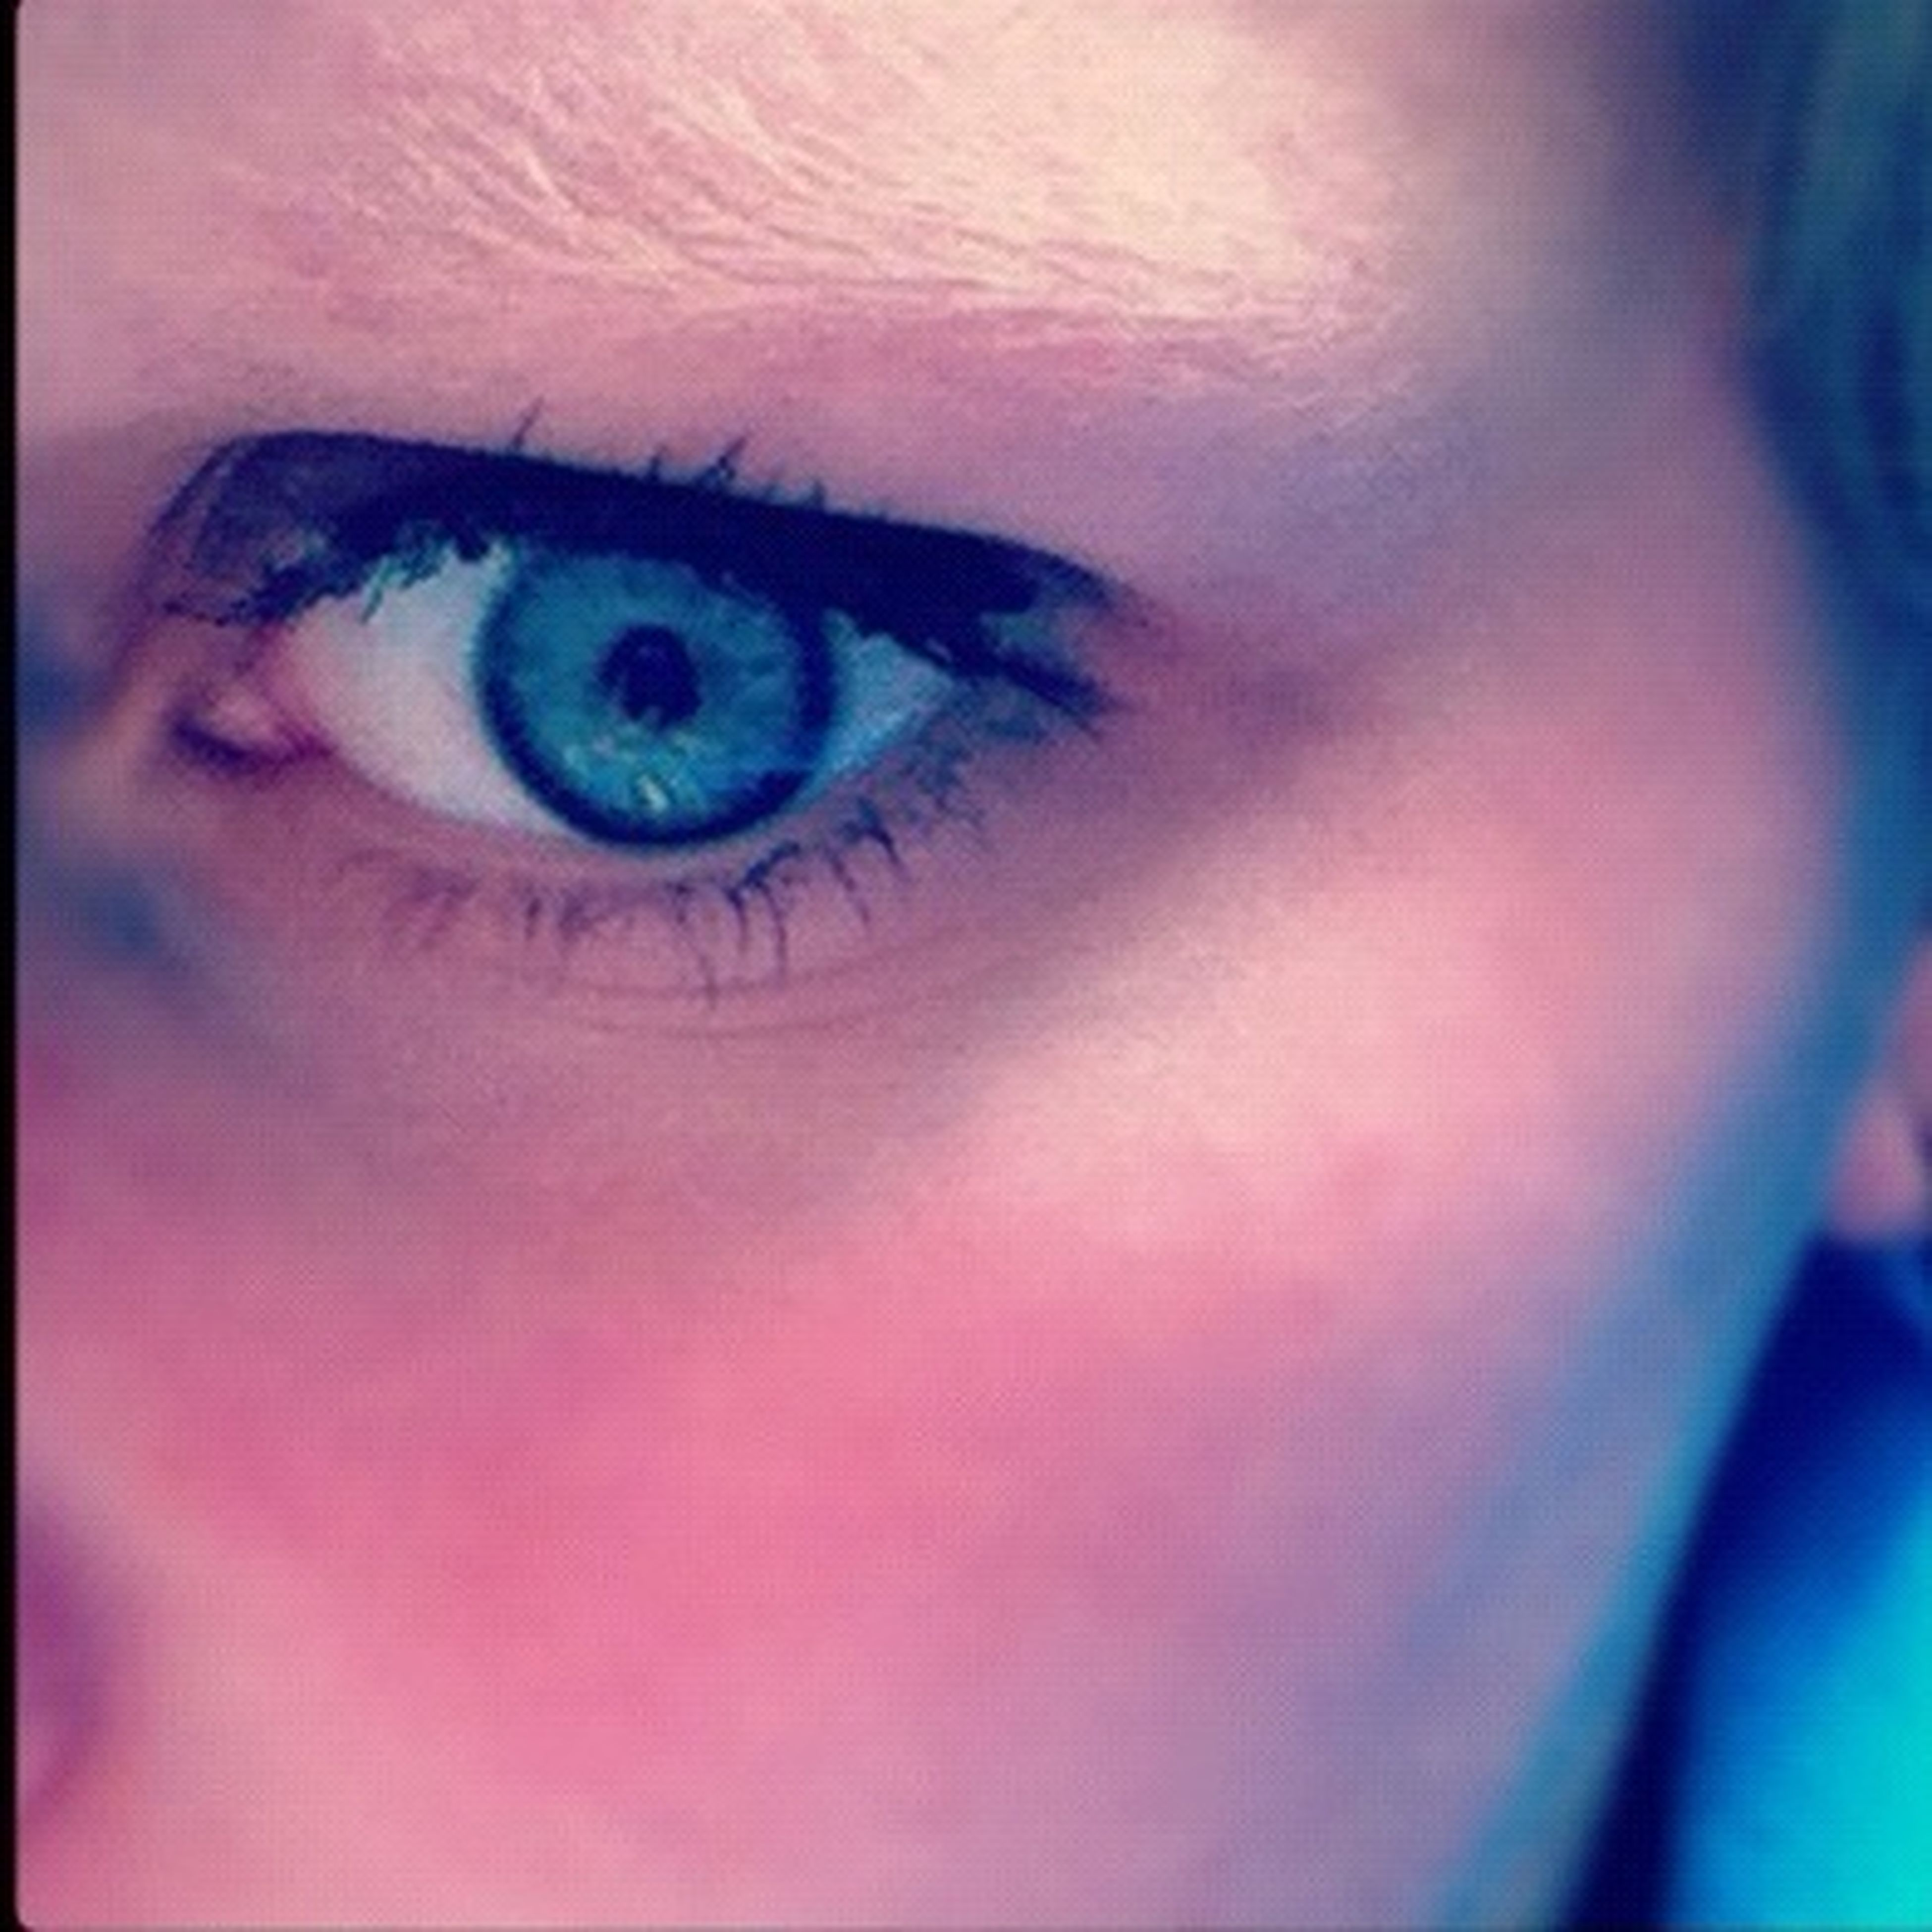 indoors, close-up, human eye, human face, lifestyles, looking at camera, headshot, young adult, portrait, human skin, part of, auto post production filter, person, leisure activity, front view, eyesight, young women